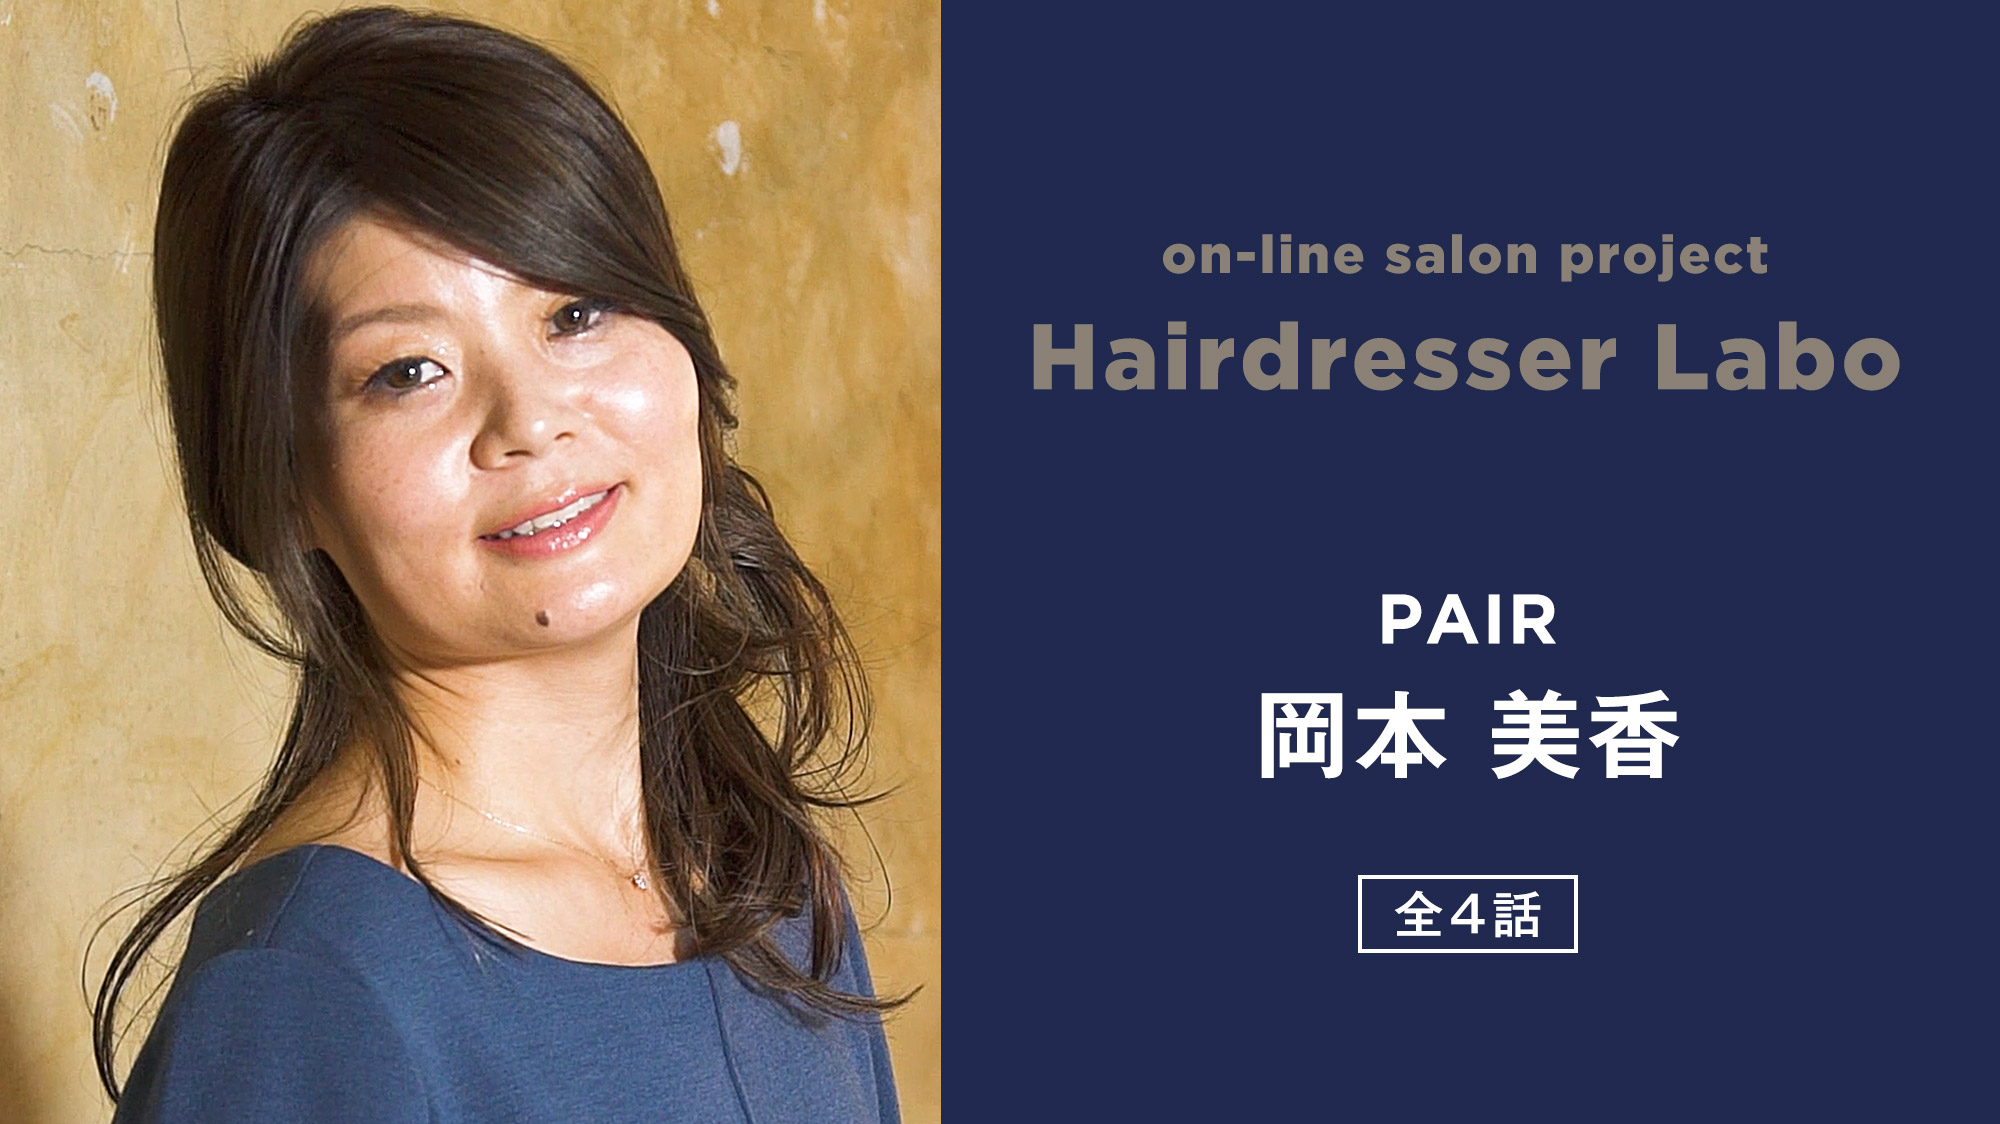 on-line salon project Hairdresser Labo『岡本 美香』 全4話